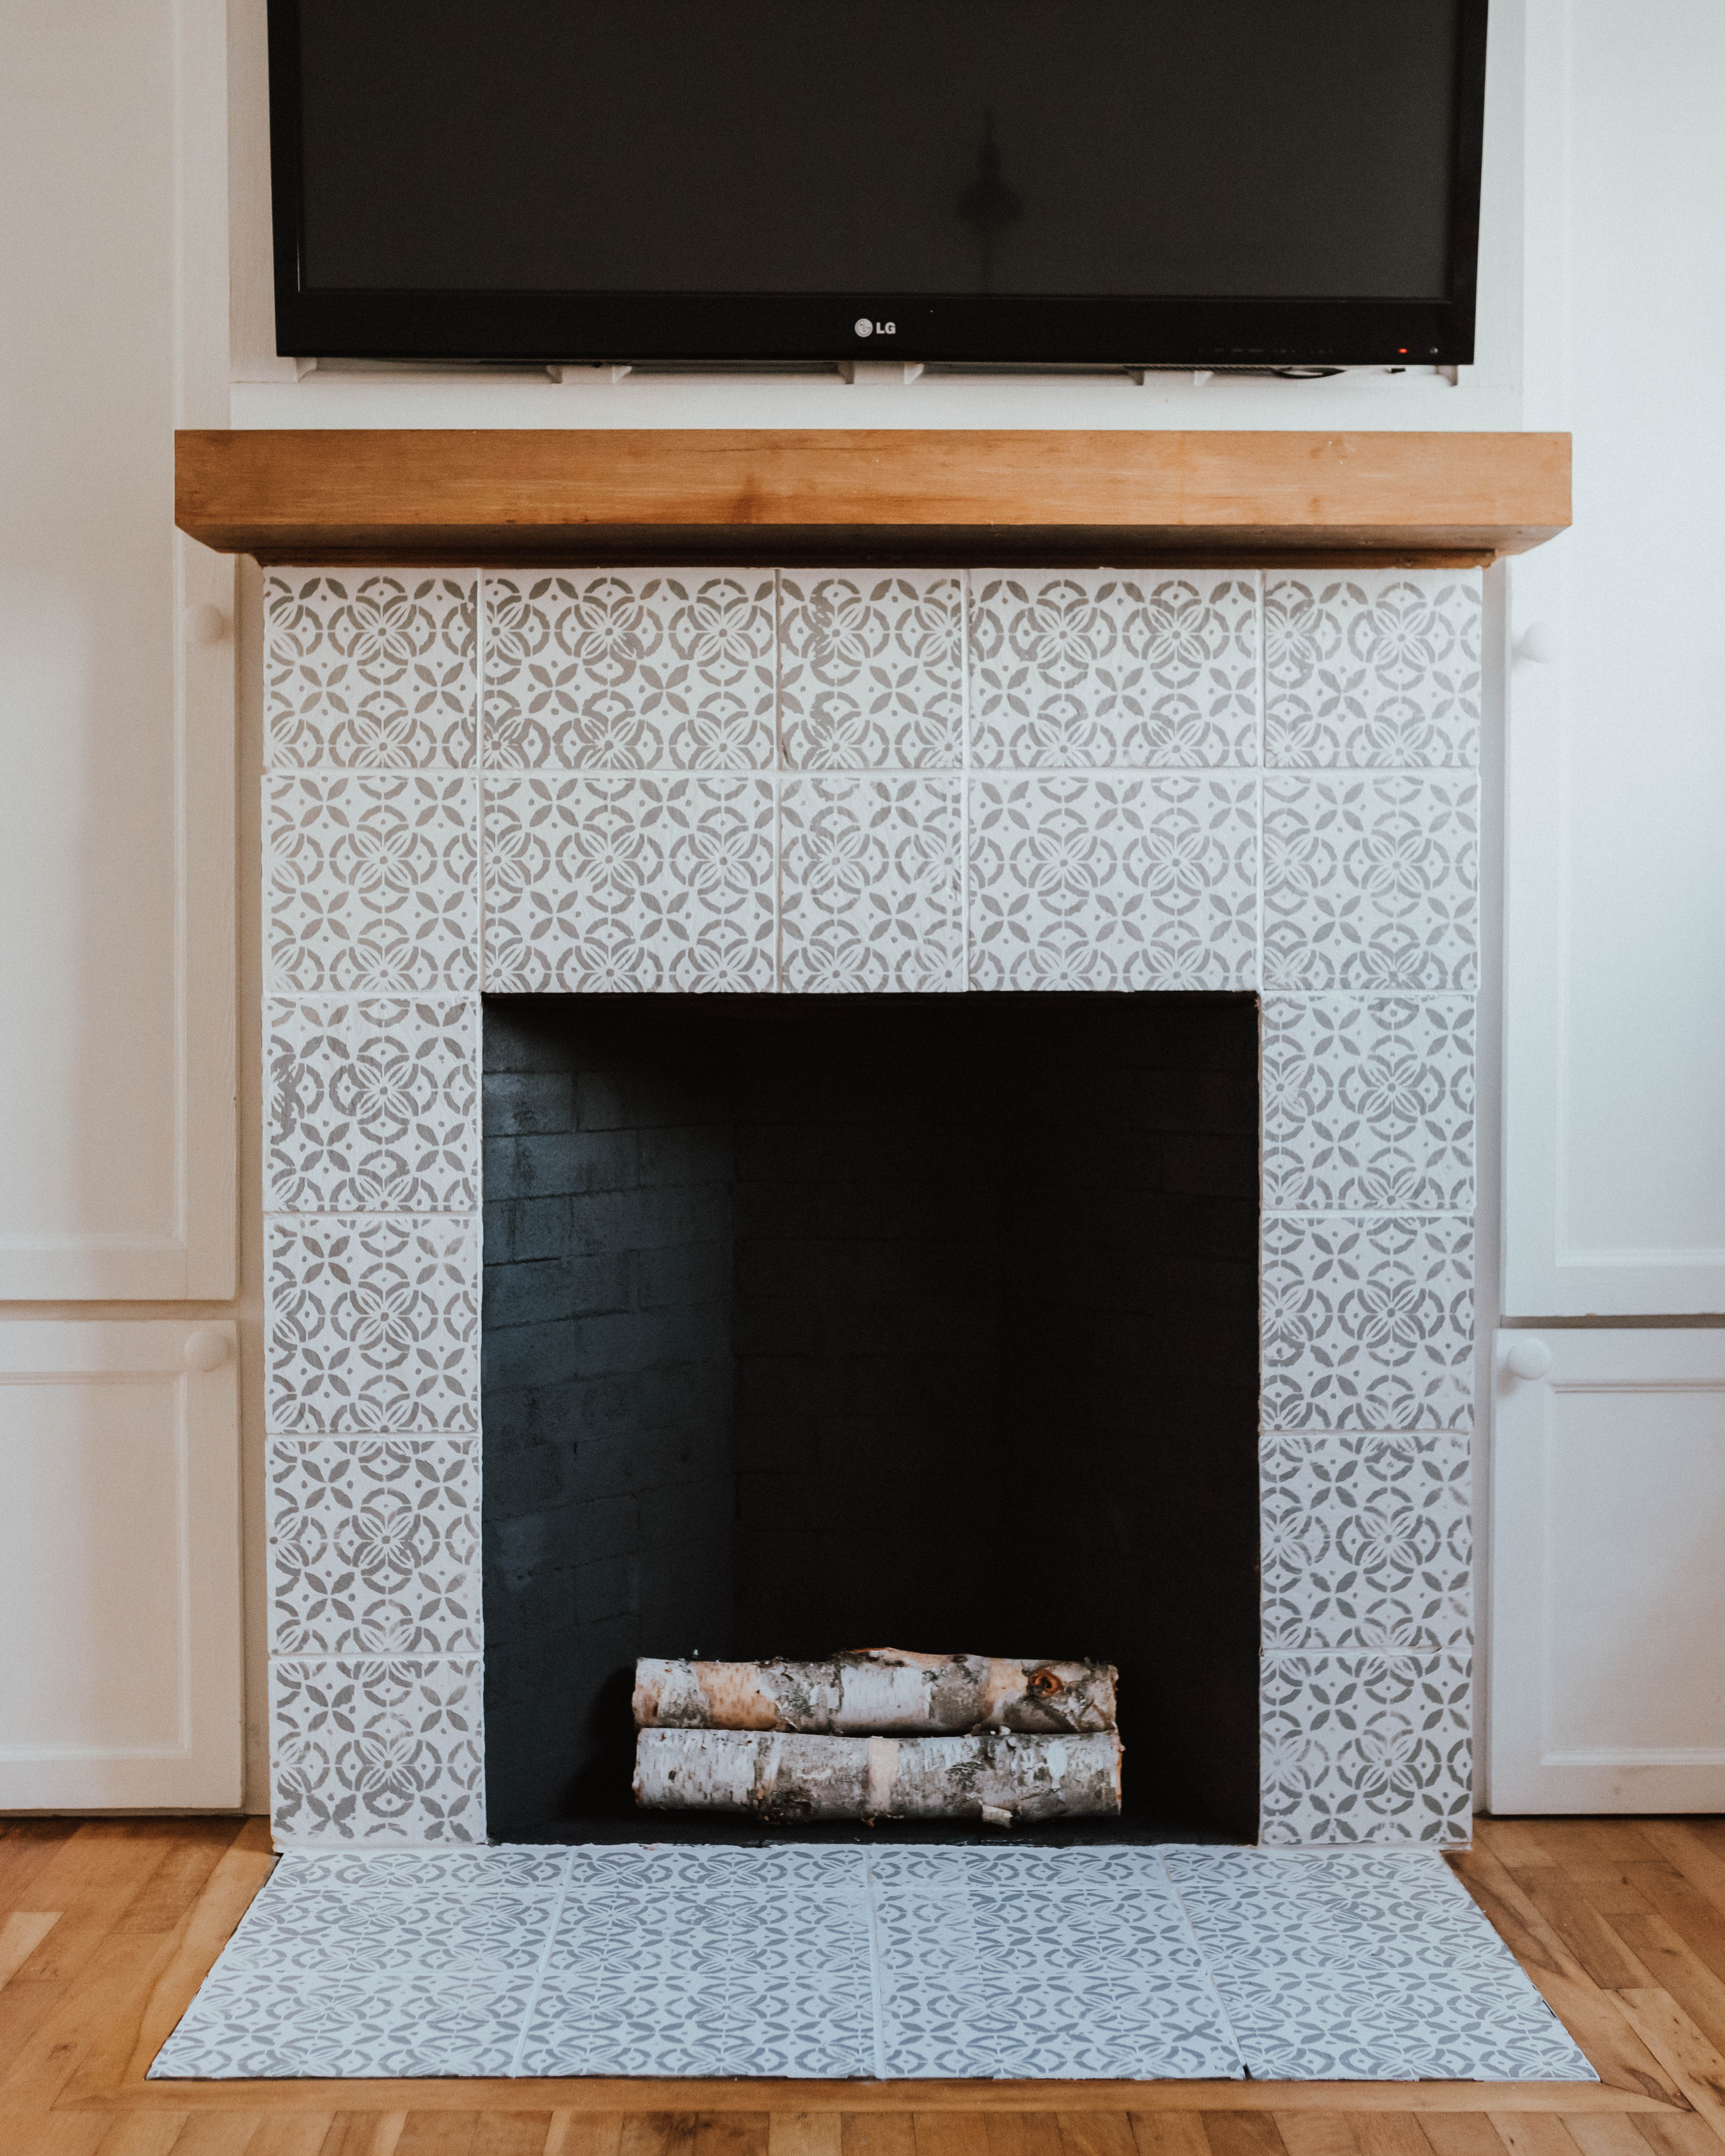 My $100 Fireplace Makeover with Behr Paint | The Wild Decoelis | after using Behr paint